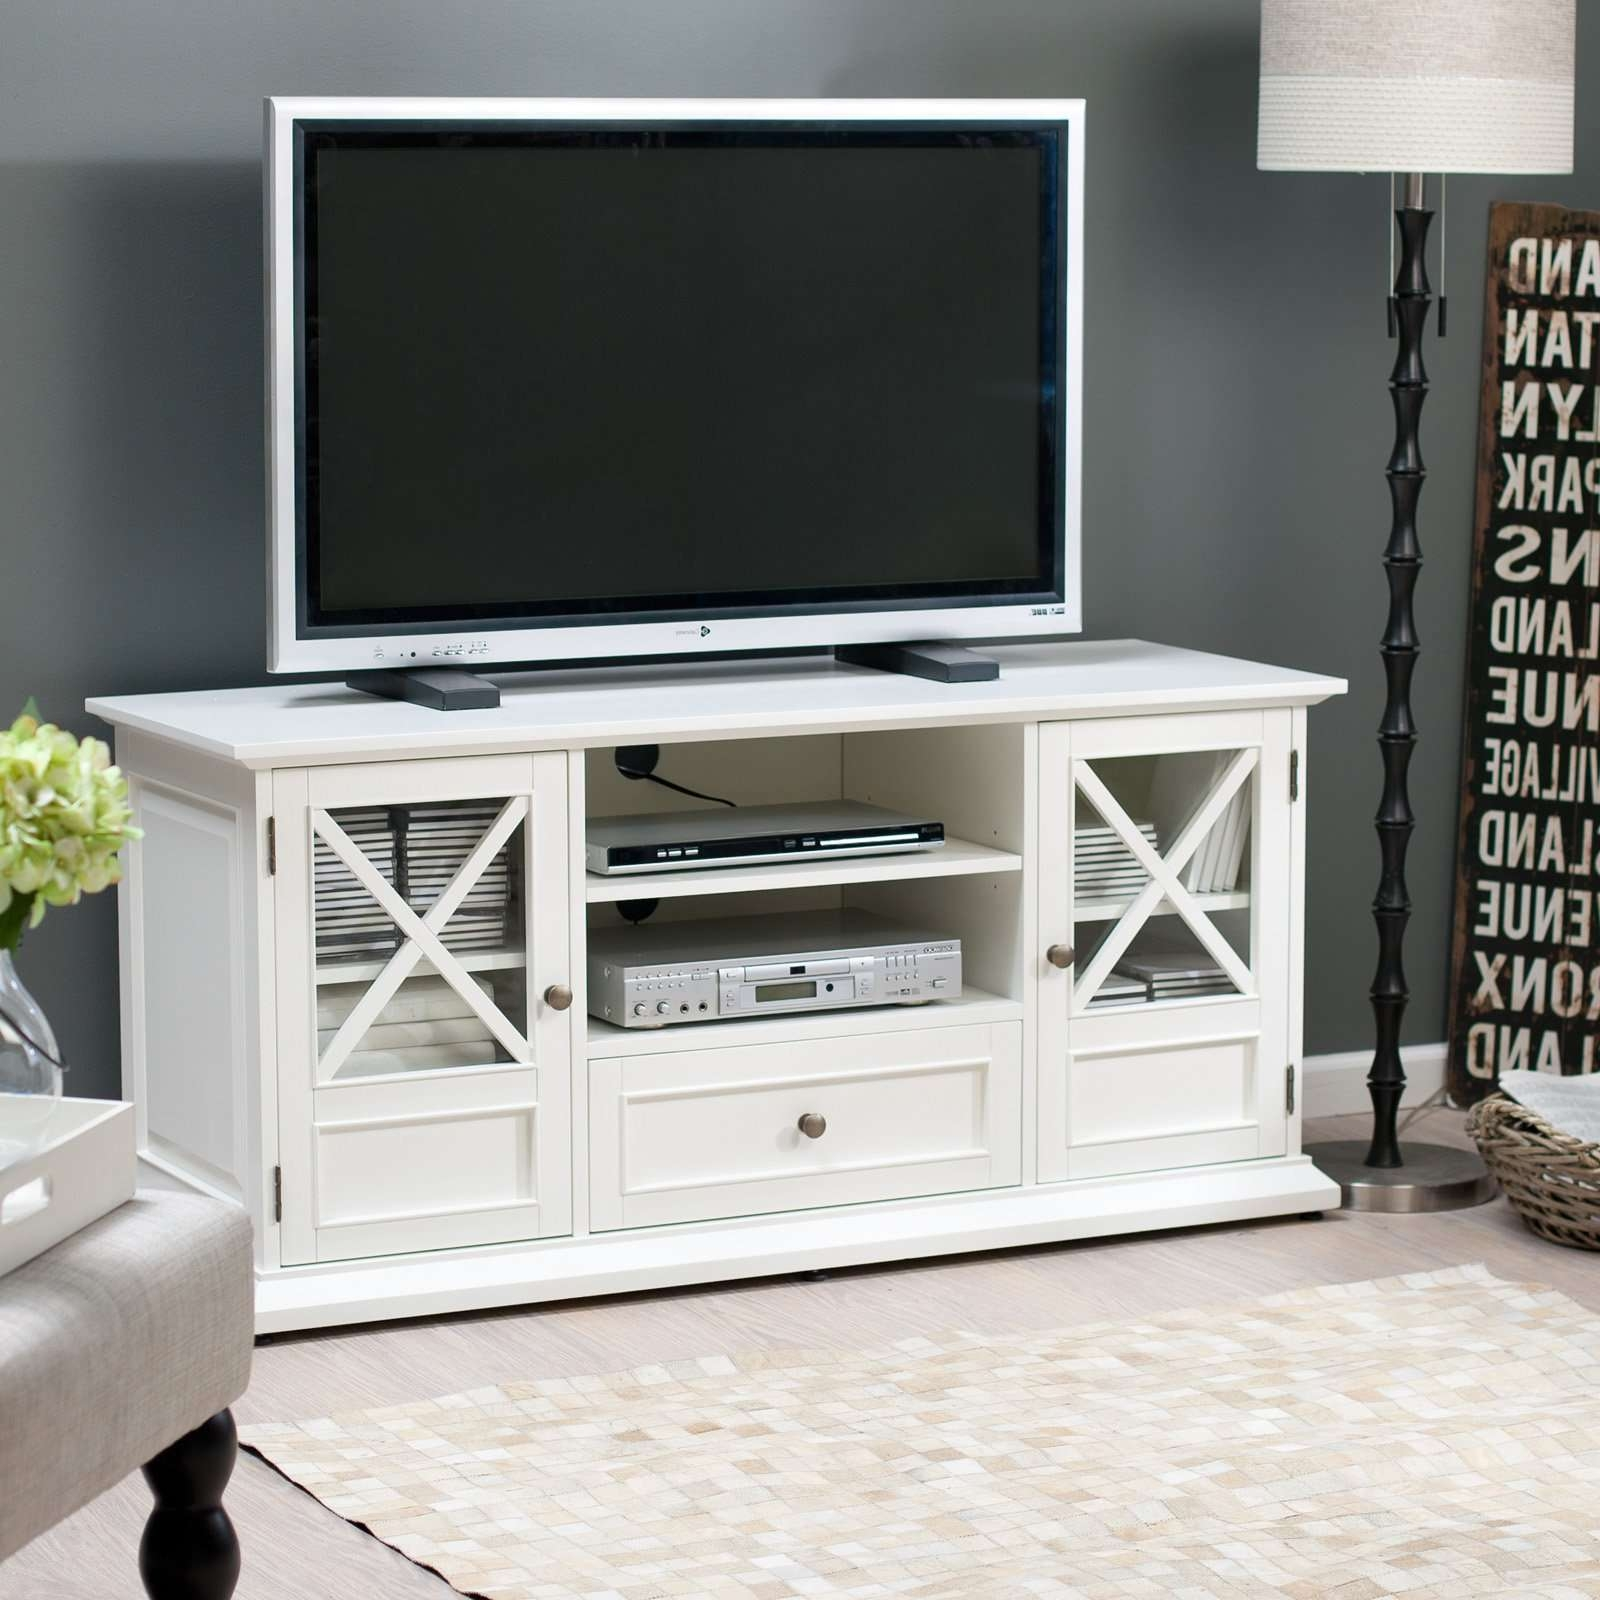 Belham Living Hampton Tv Stand – White – Walmart In White Tv Stands (View 3 of 15)